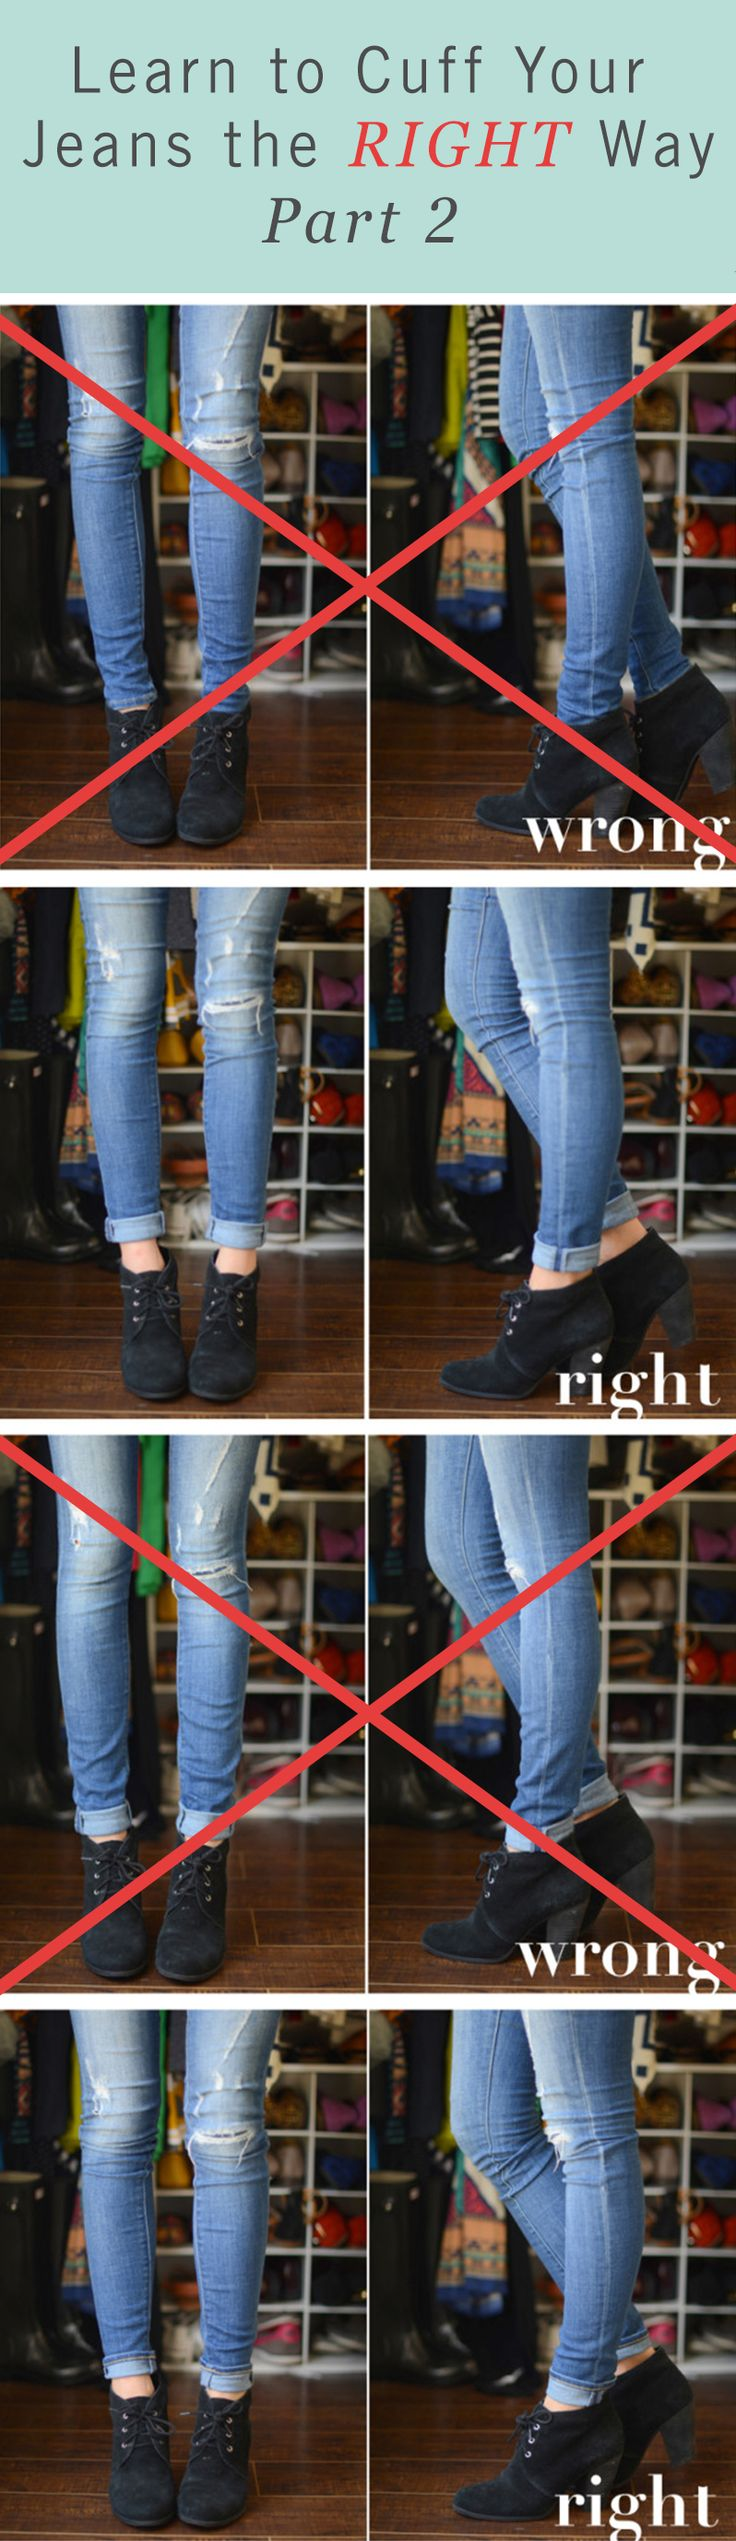 Even skinny jeans can use a proper cuffing. Make your casual fall outfit the best it can be with these tips on how to cuff your jeans.